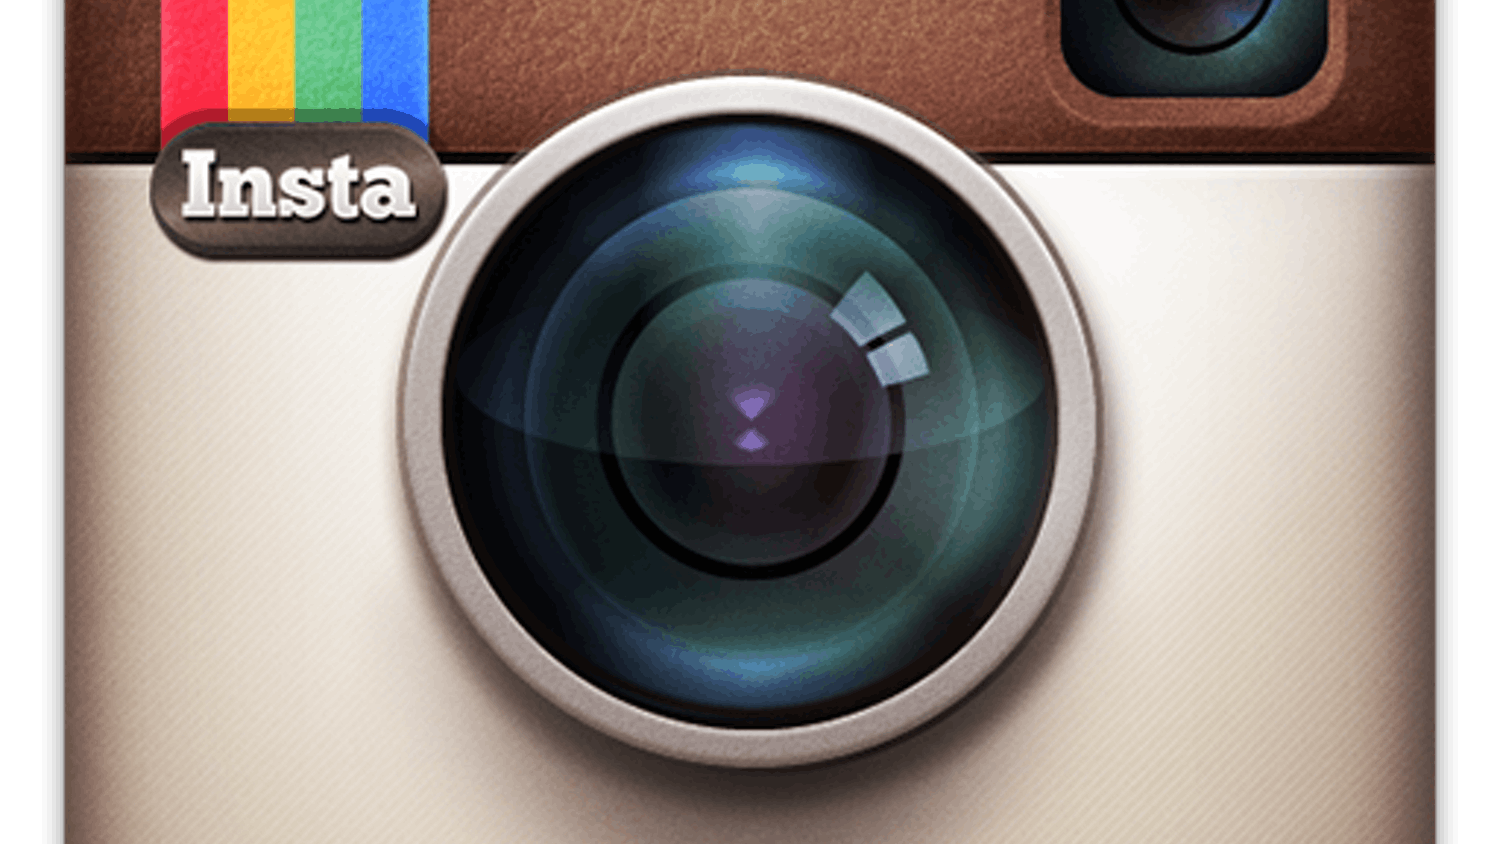 Instagram is updating. The updates —confusing to some and angering to others — will be an adjustment for all users of the popularsocial media platform.